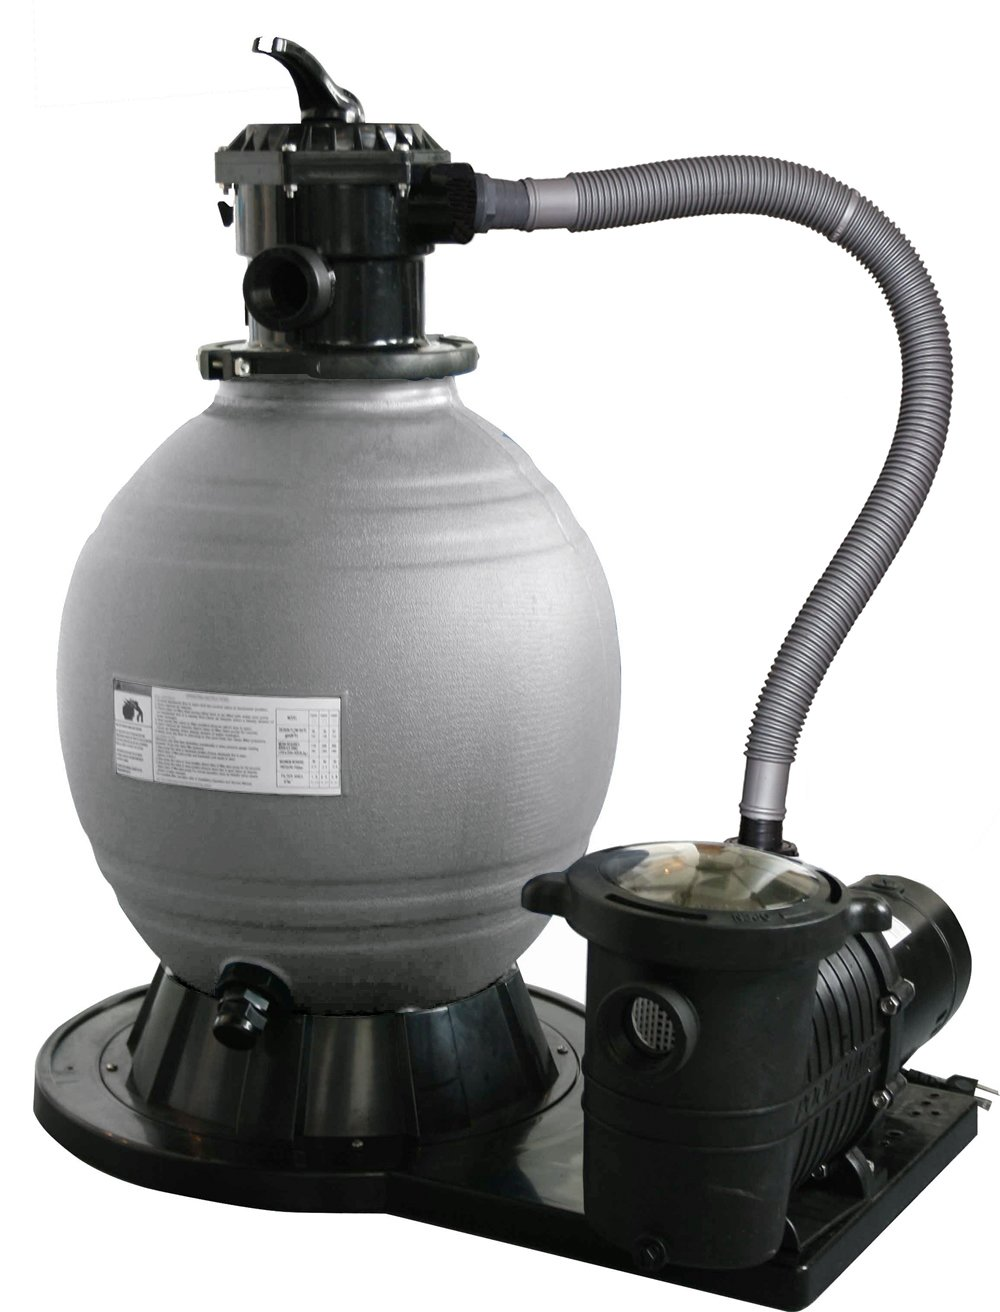 Blue Wave 22-Inch Sand Filter System with 1-1/2 HP Pump for Above Ground Pools by Blue Wave